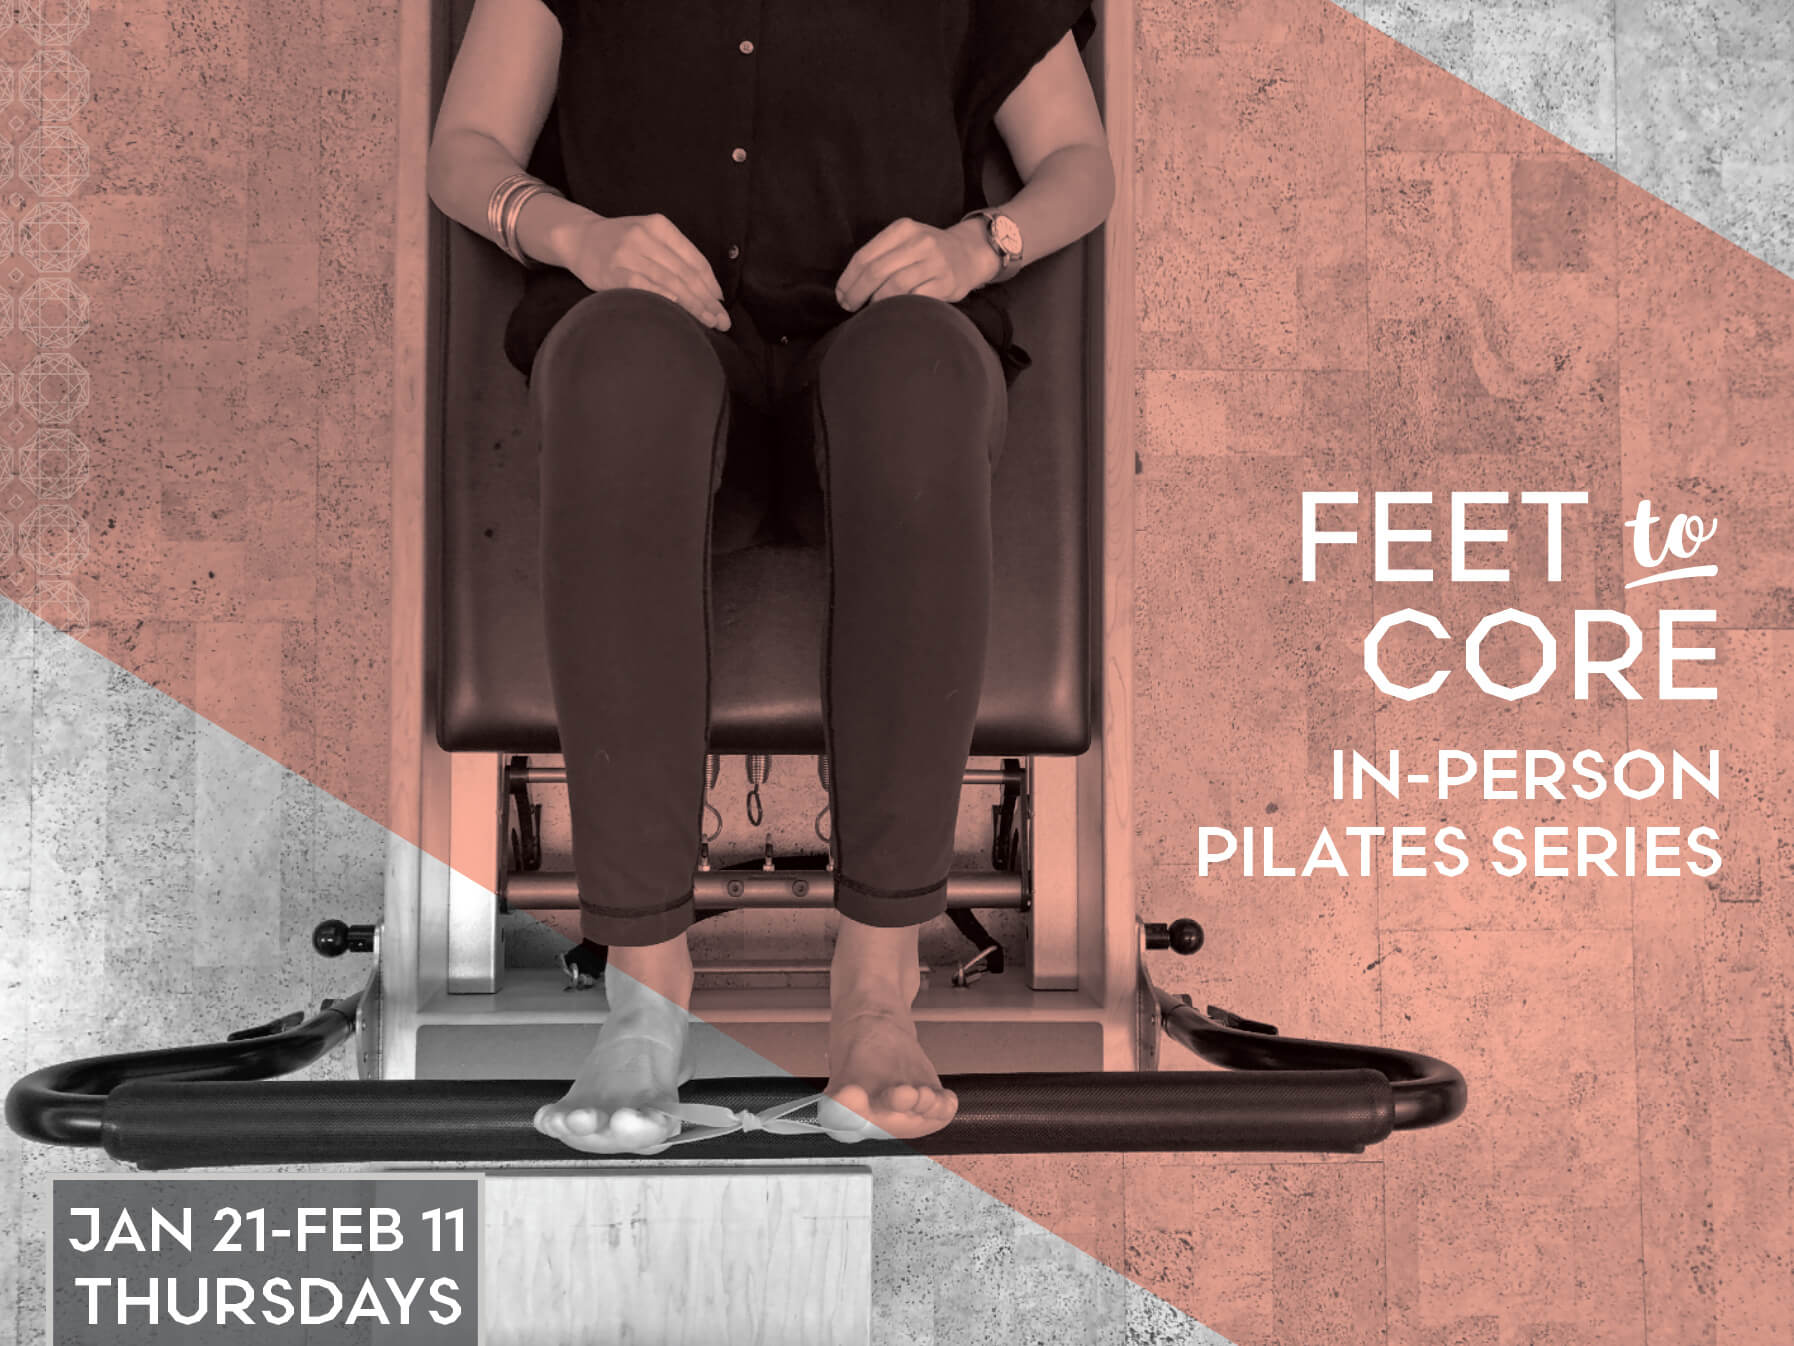 Feet to Core Connection: PIlates Series